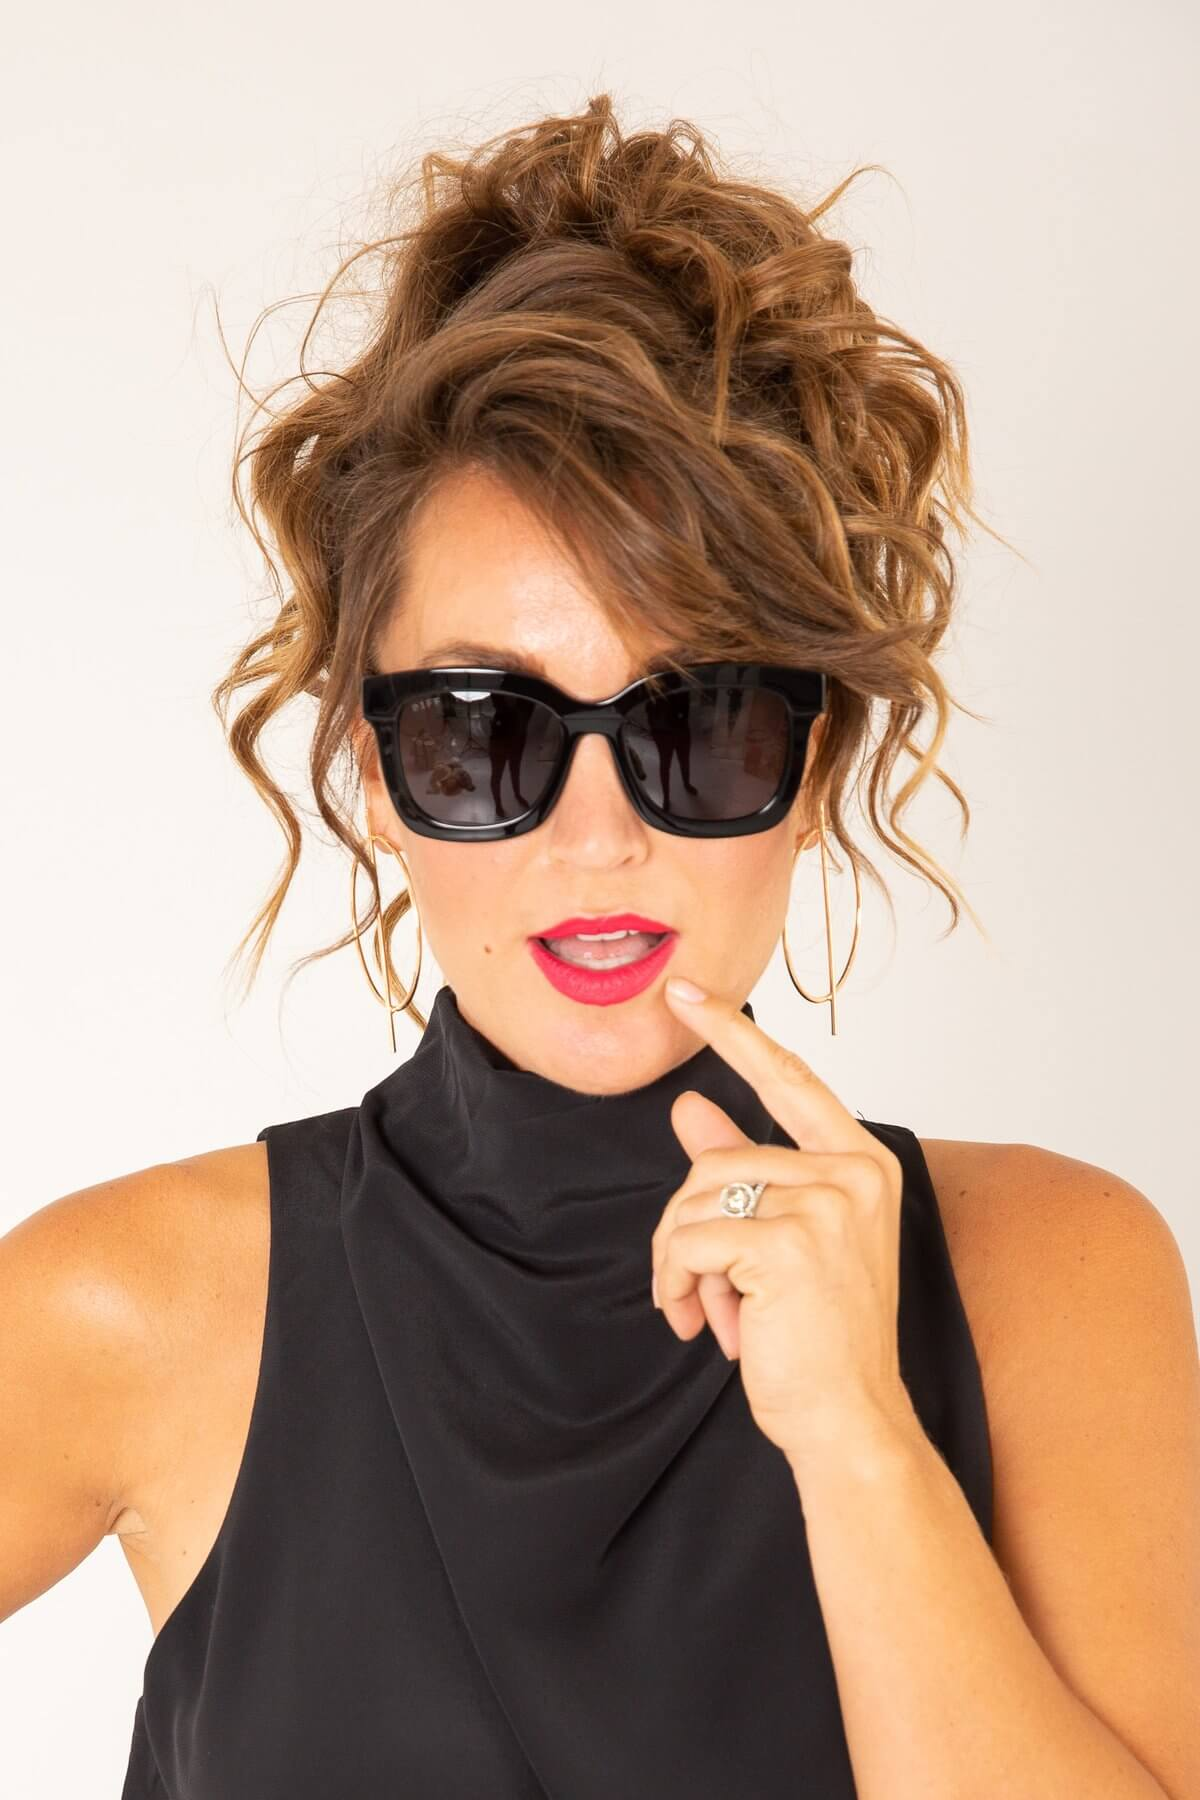 a woman with brown curly hair wearing black sunglasses